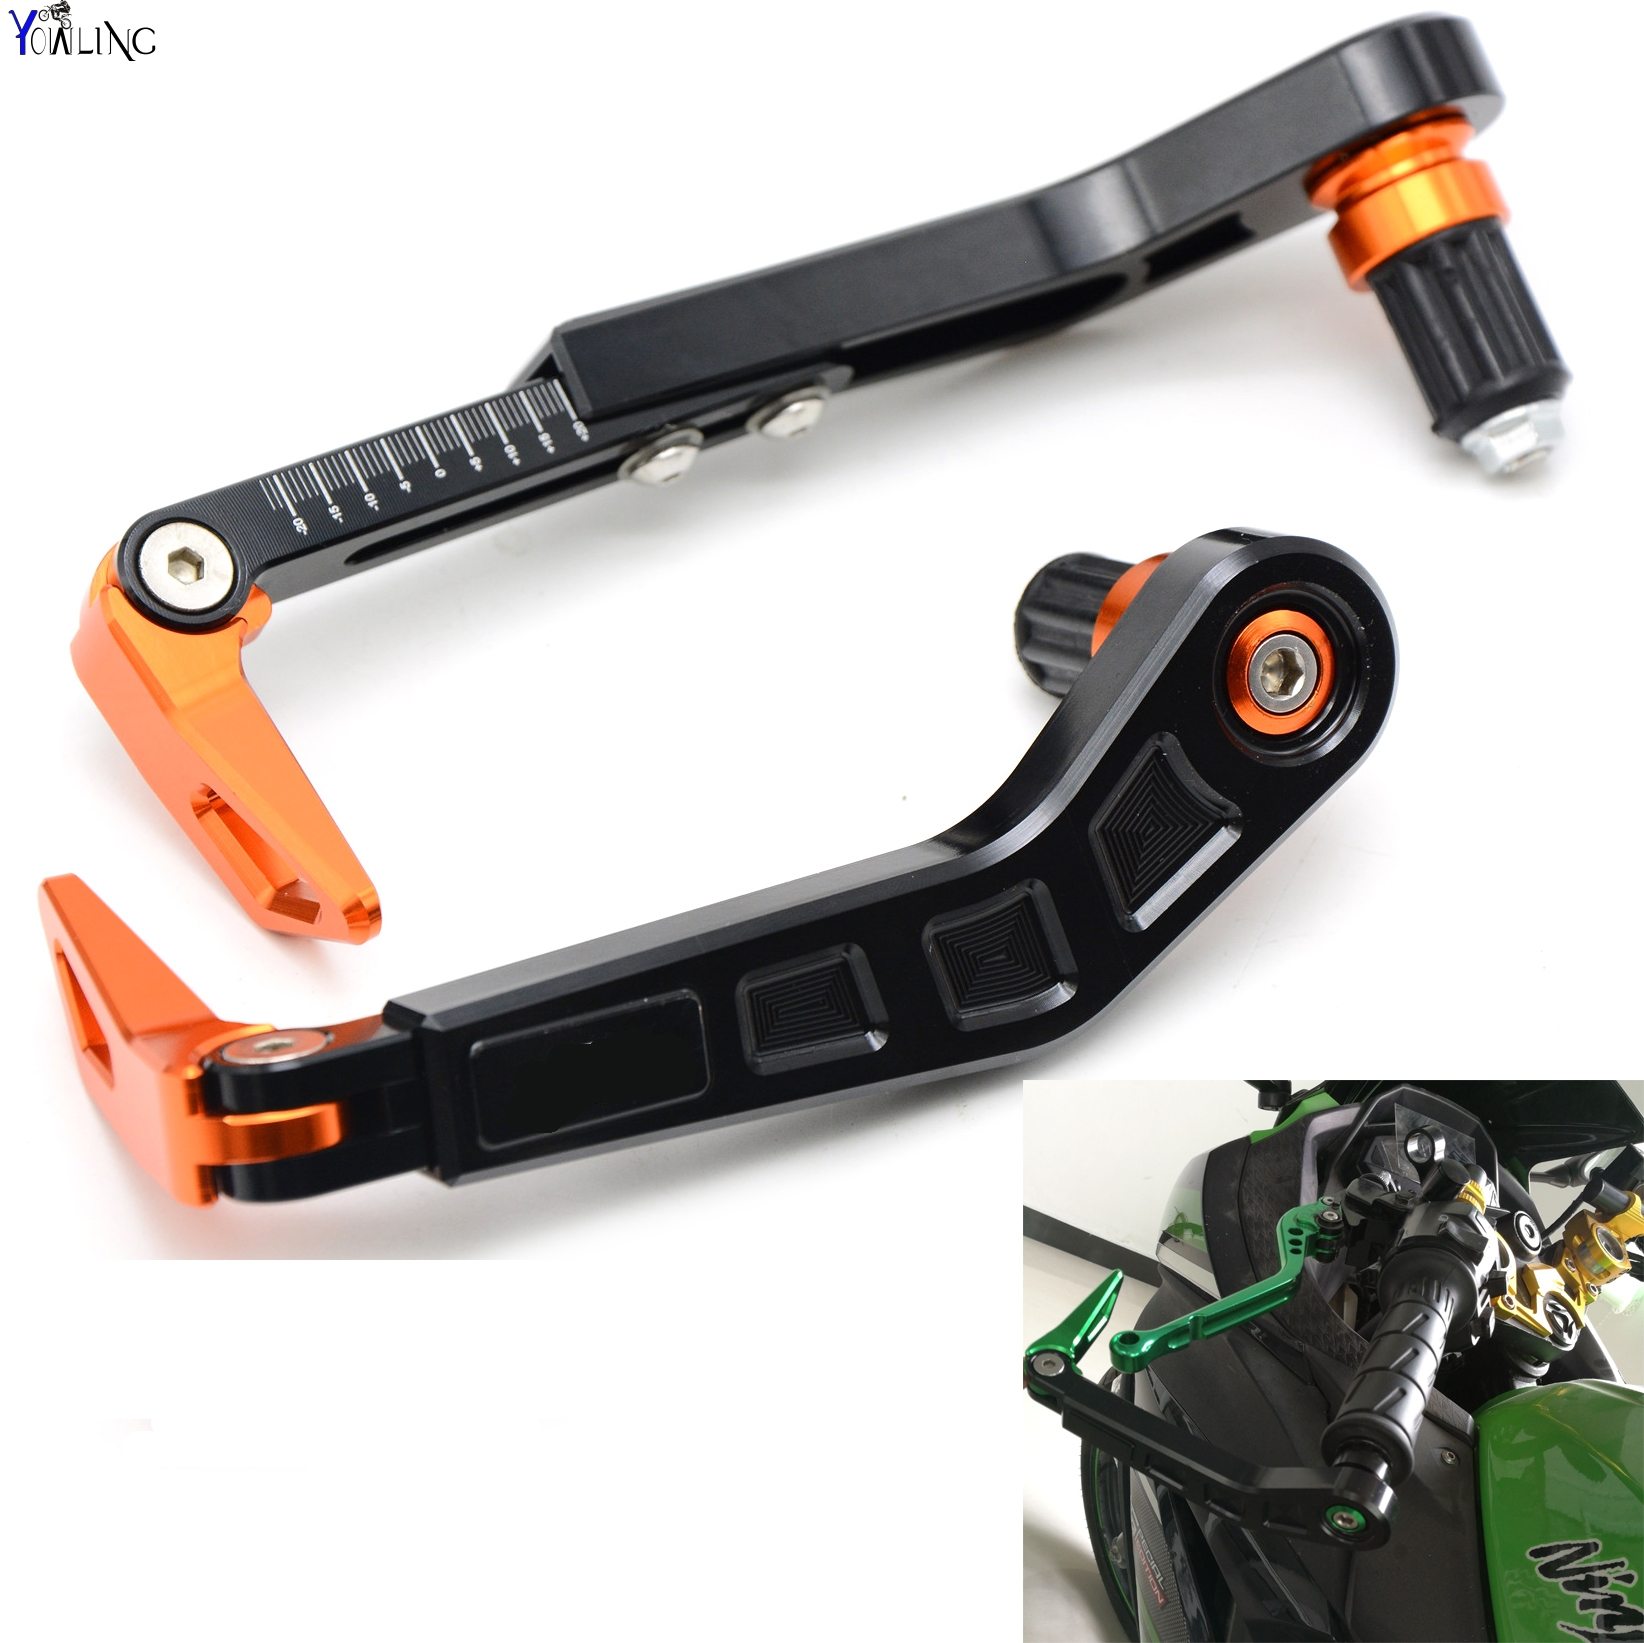 Universal 7/822mm Motorcycle Handlebar Brake Clutch Lever Protect Guard for KTM 200 250 390 690 990 Duke RC SMC/SMCR Enduro R